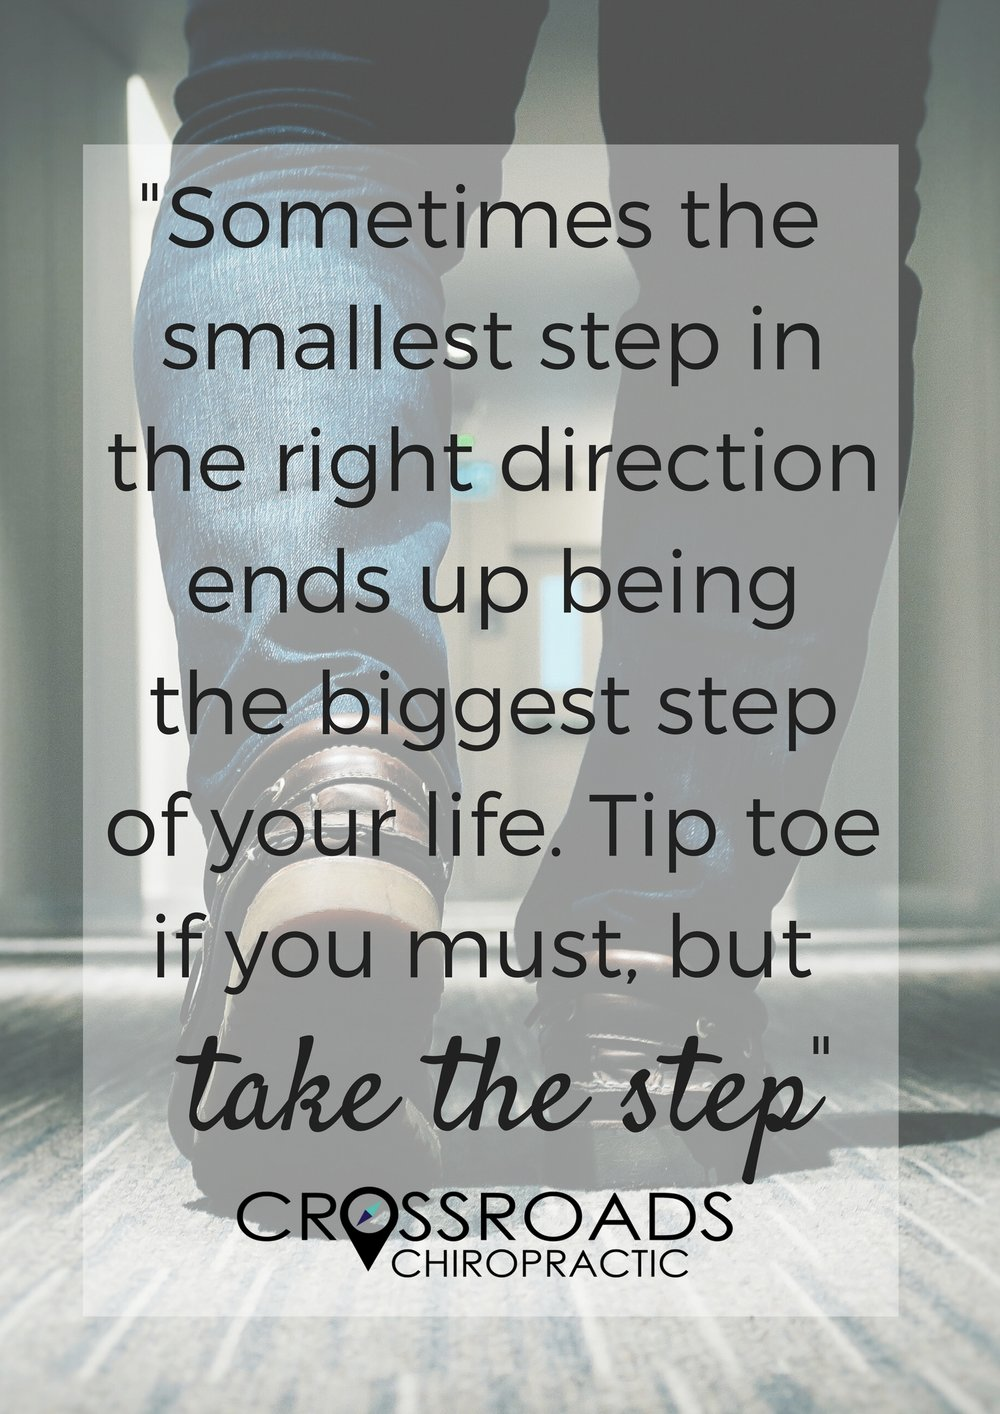 """Sometimes the smallest step in the right direction ends up being the biggest step of your life. Tip toe if you must, but take the step"".jpg"